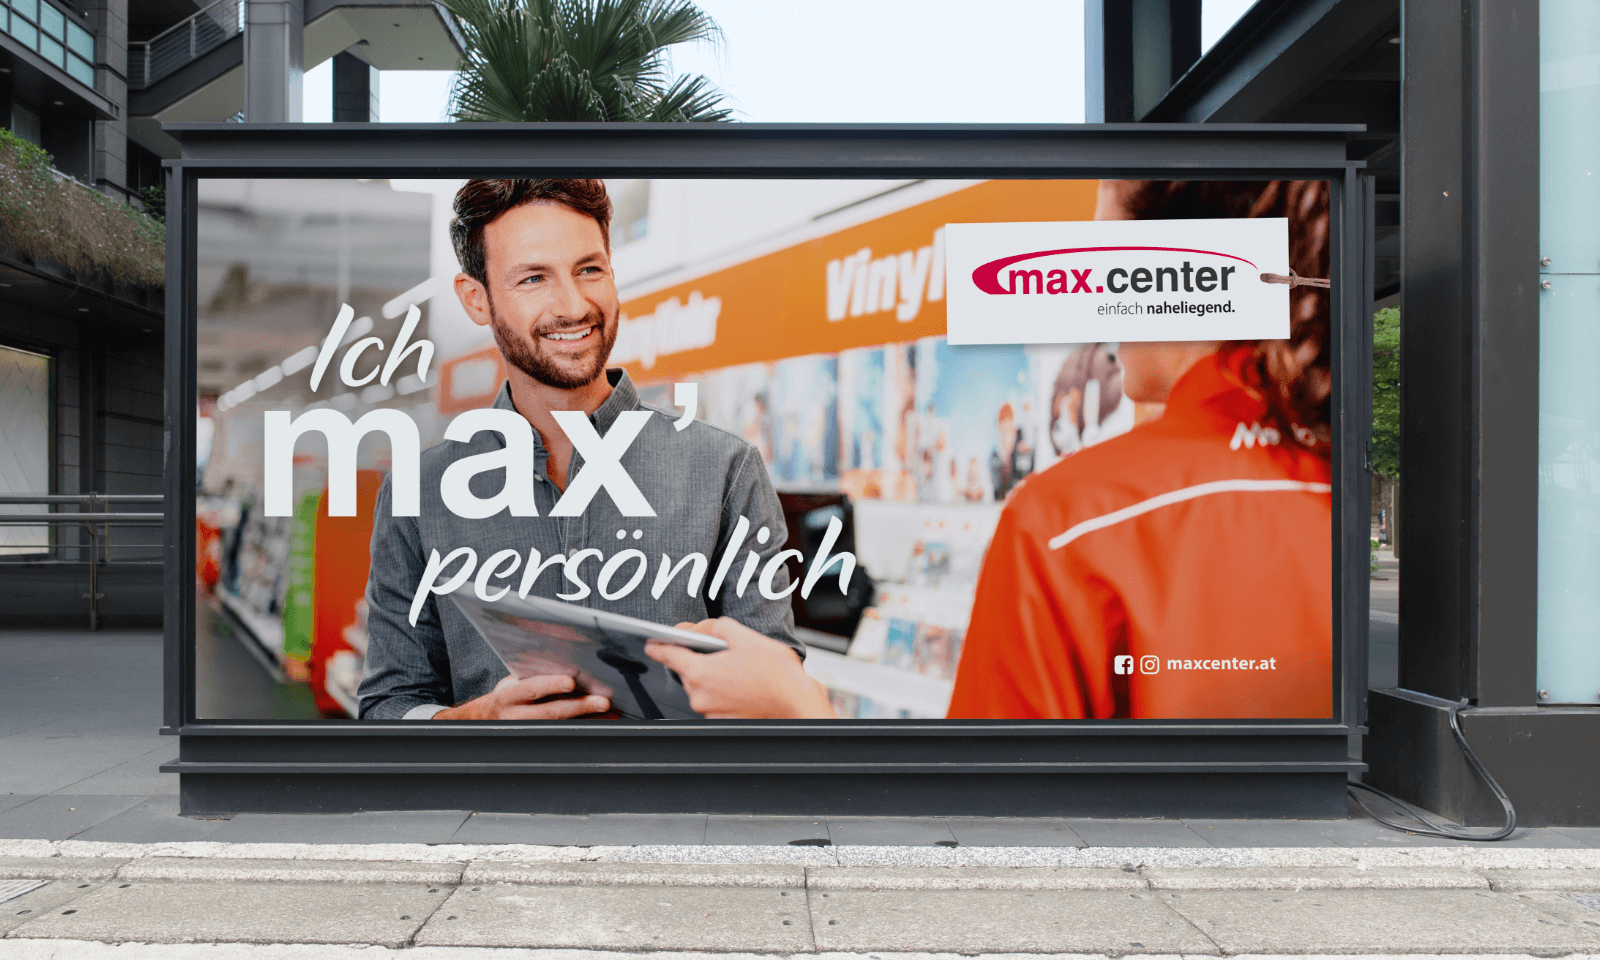 Plakat Max Center mit Mann